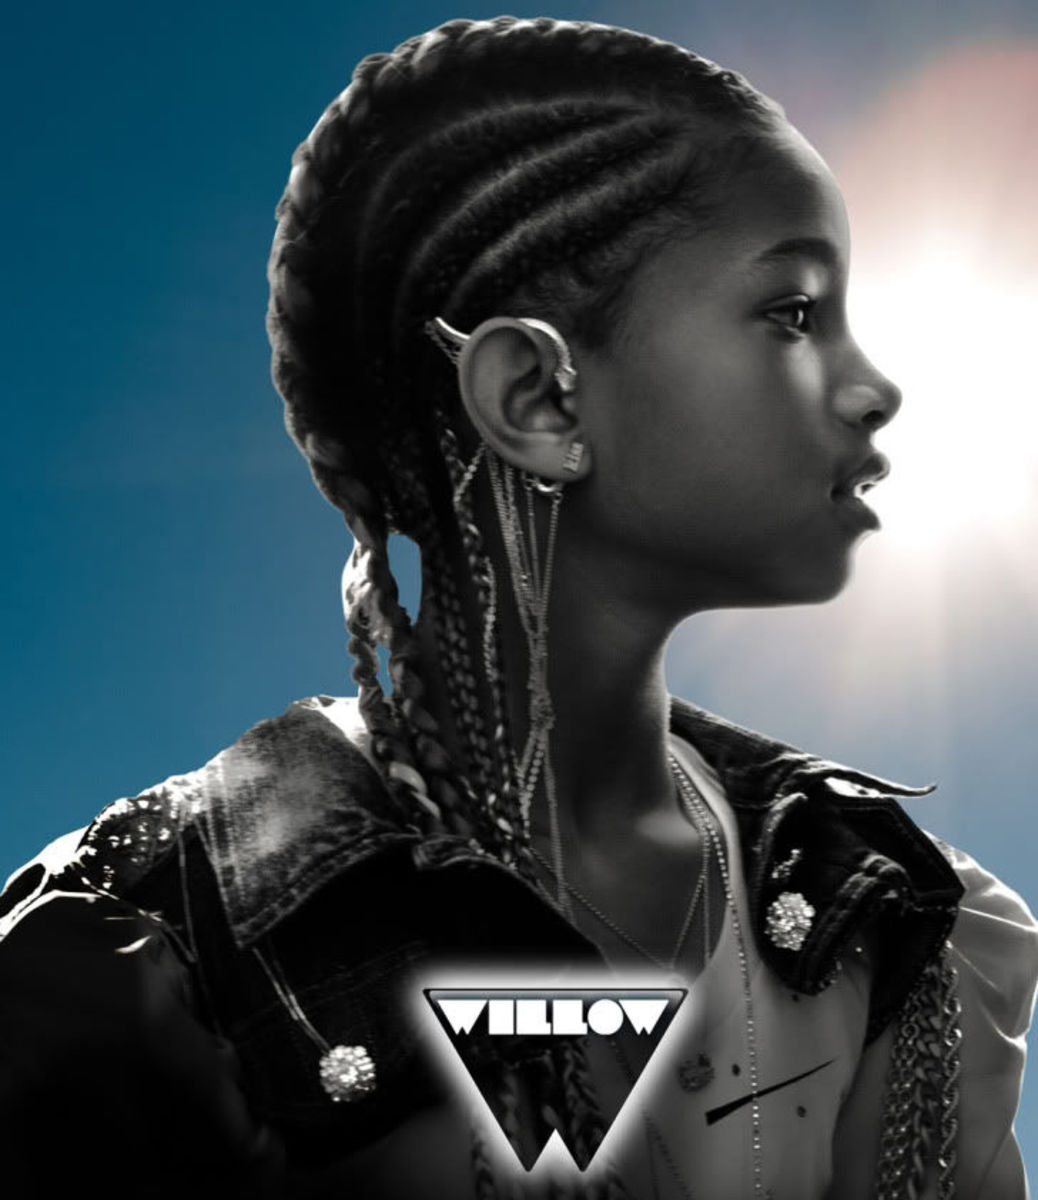 Willow Smith cornrows hairstyle.